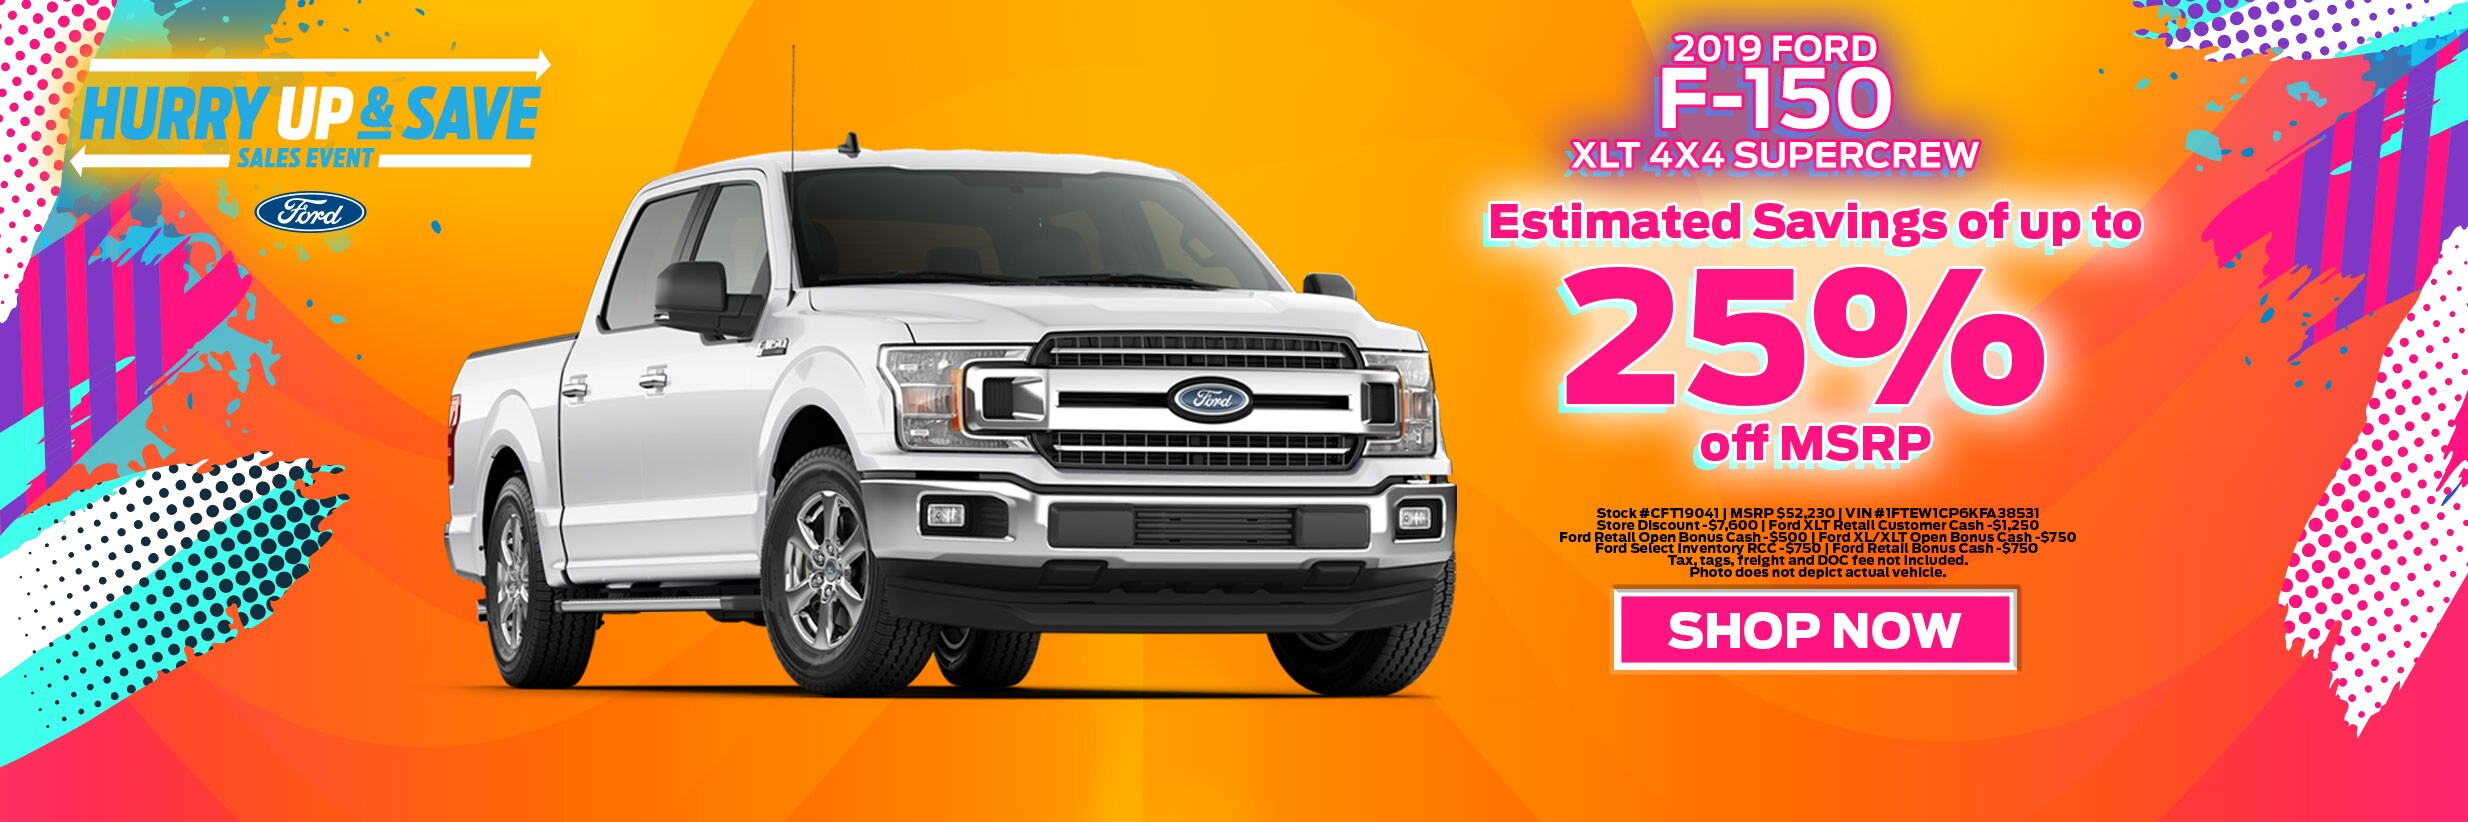 Ford Dealers Nj >> Monthly Specials Chapman Ford My Local Ford Dealer In Nj